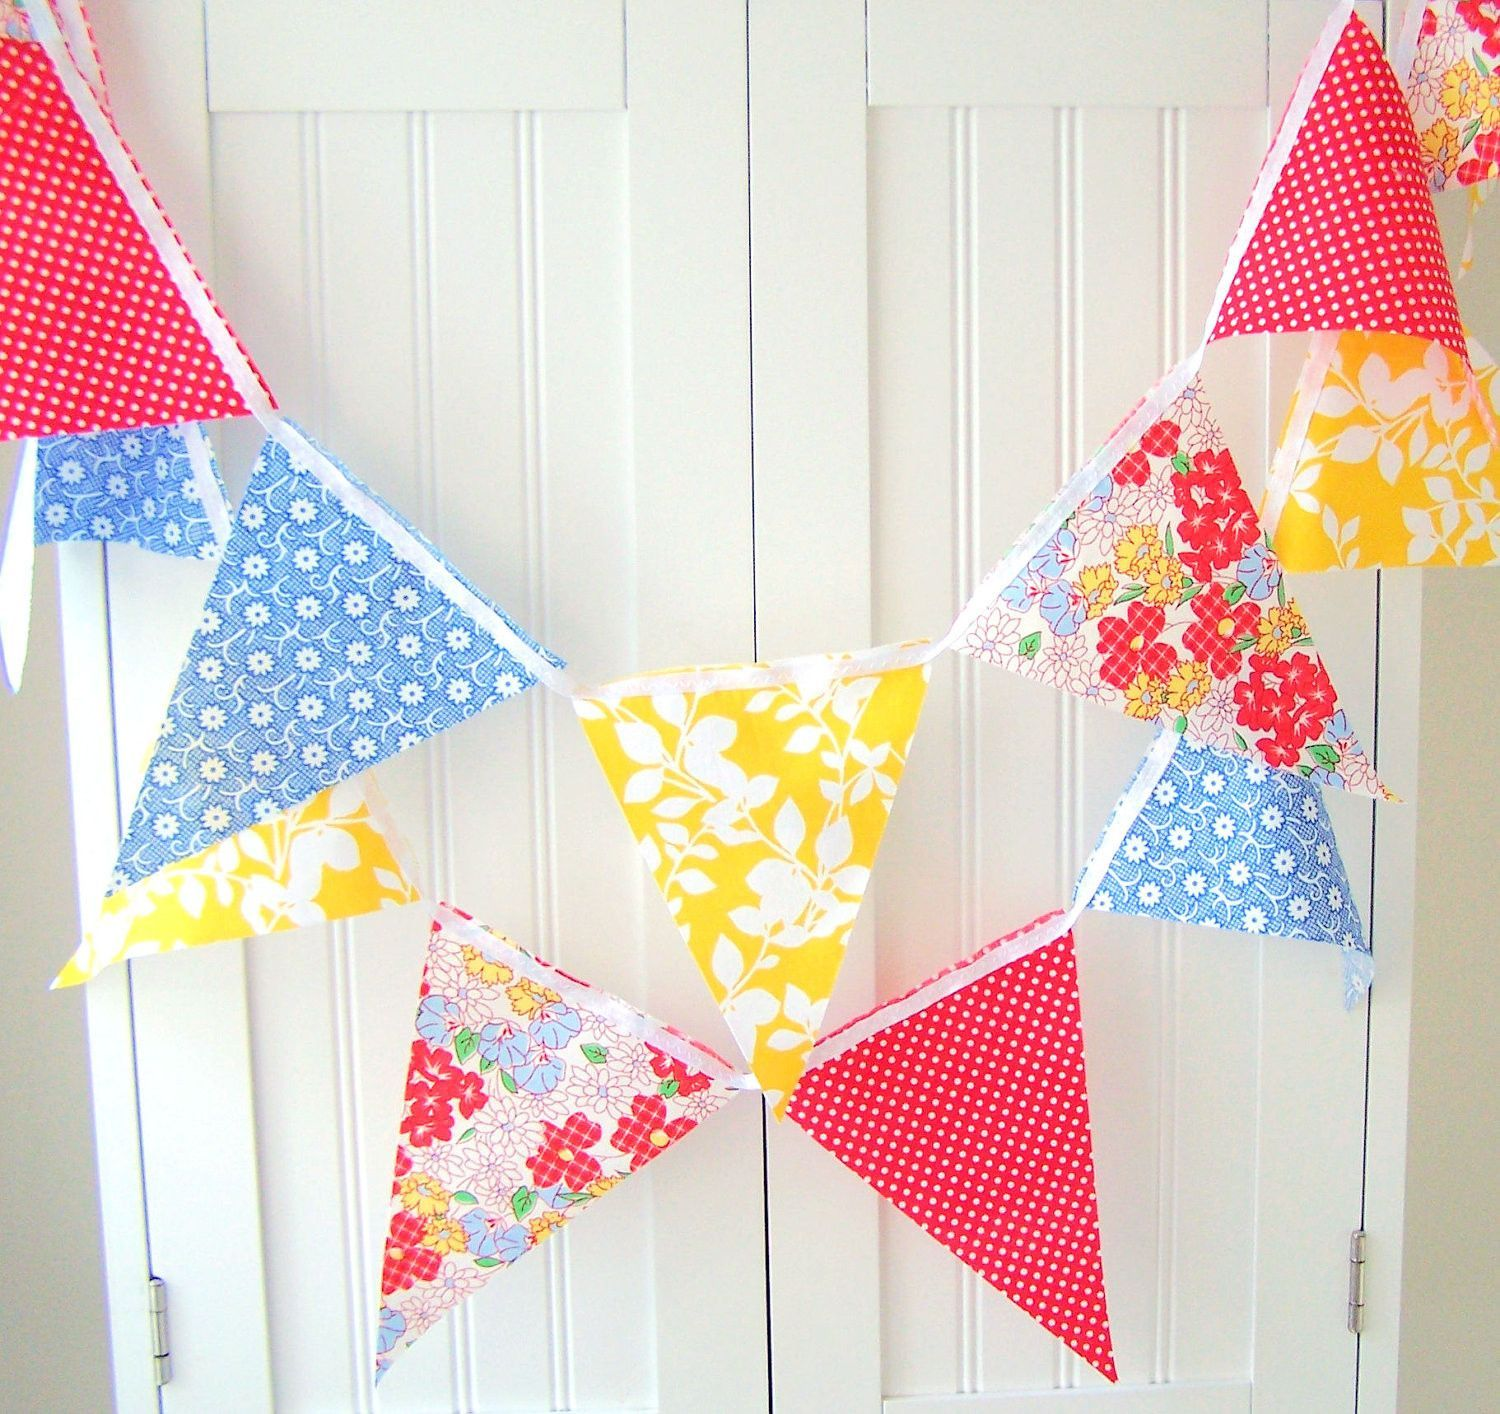 Vector bunting flags lovely celebration card with colorful paper - Party Banner Bunting Fabric Pennant Flags Flowers Wedding Garland Polka Dots